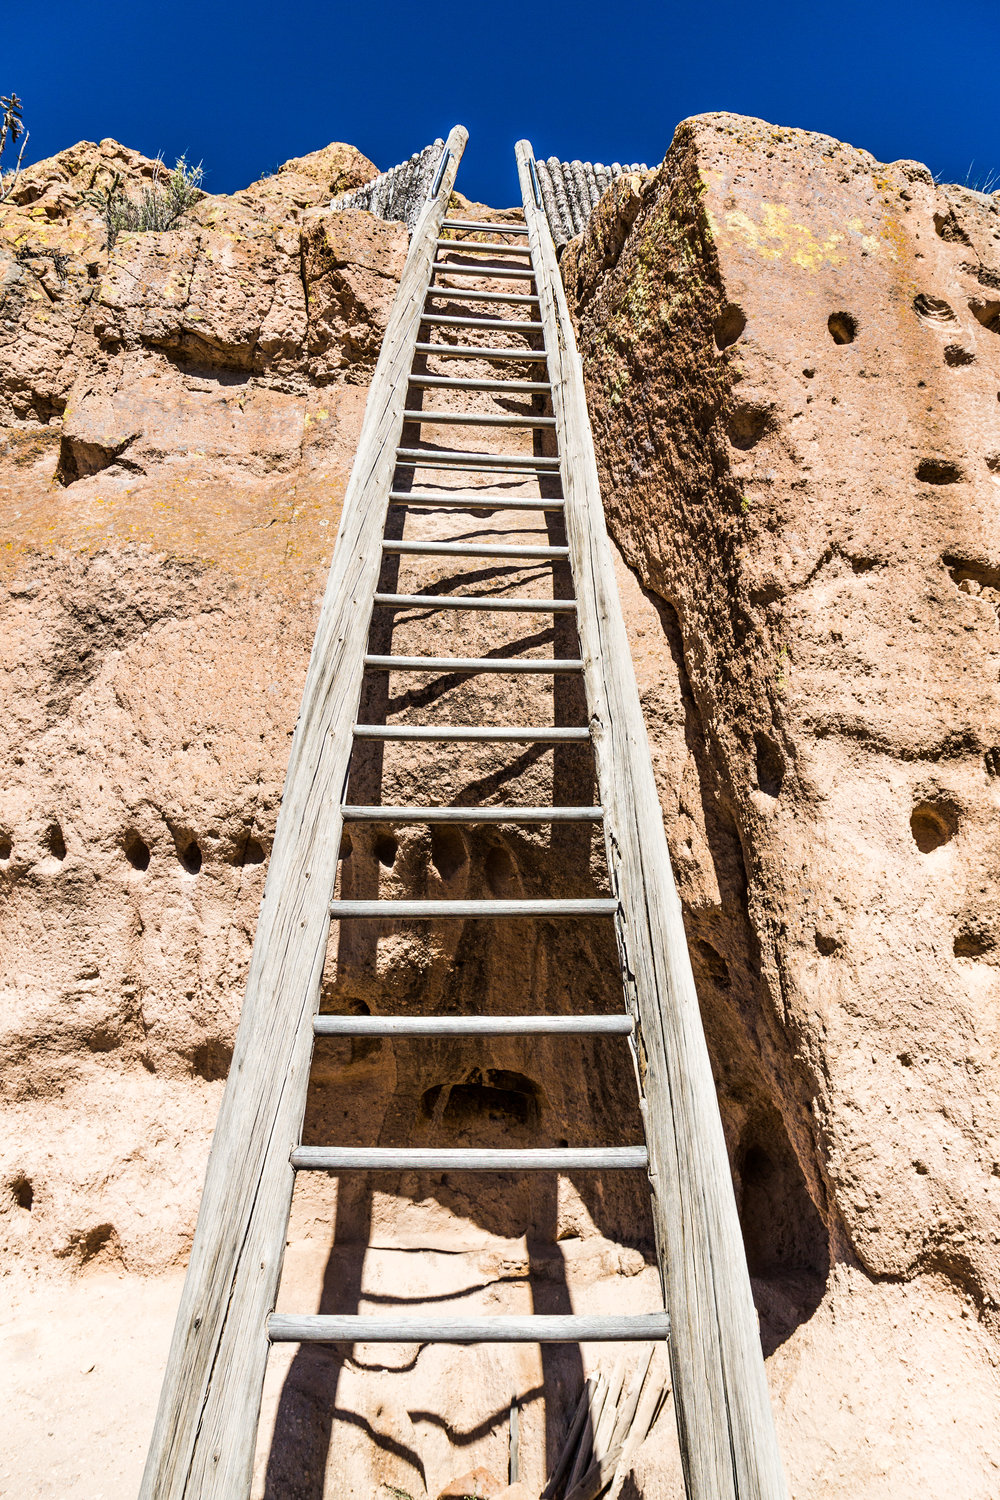 To access the mesa top, the Tewa people had two options: naturally eroded channels or ladders. The water channels are less steep, and are actually used on the tours today. The ladder pictured here is not original.